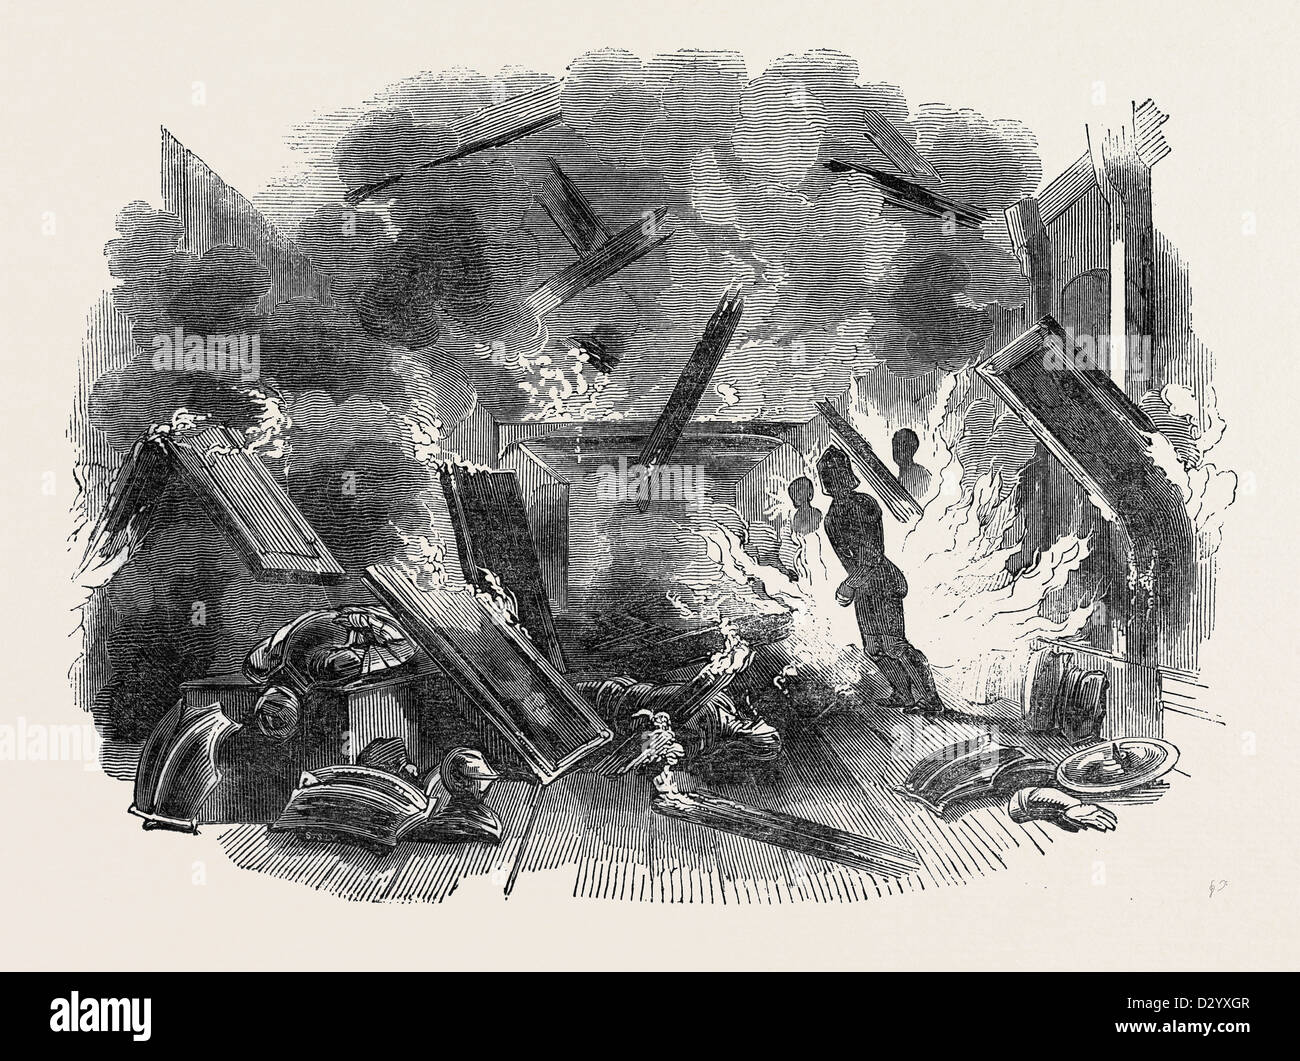 INTERIOR OF NAWORTH CASTLE, DURING THE CONFLAGRATION - Stock Image